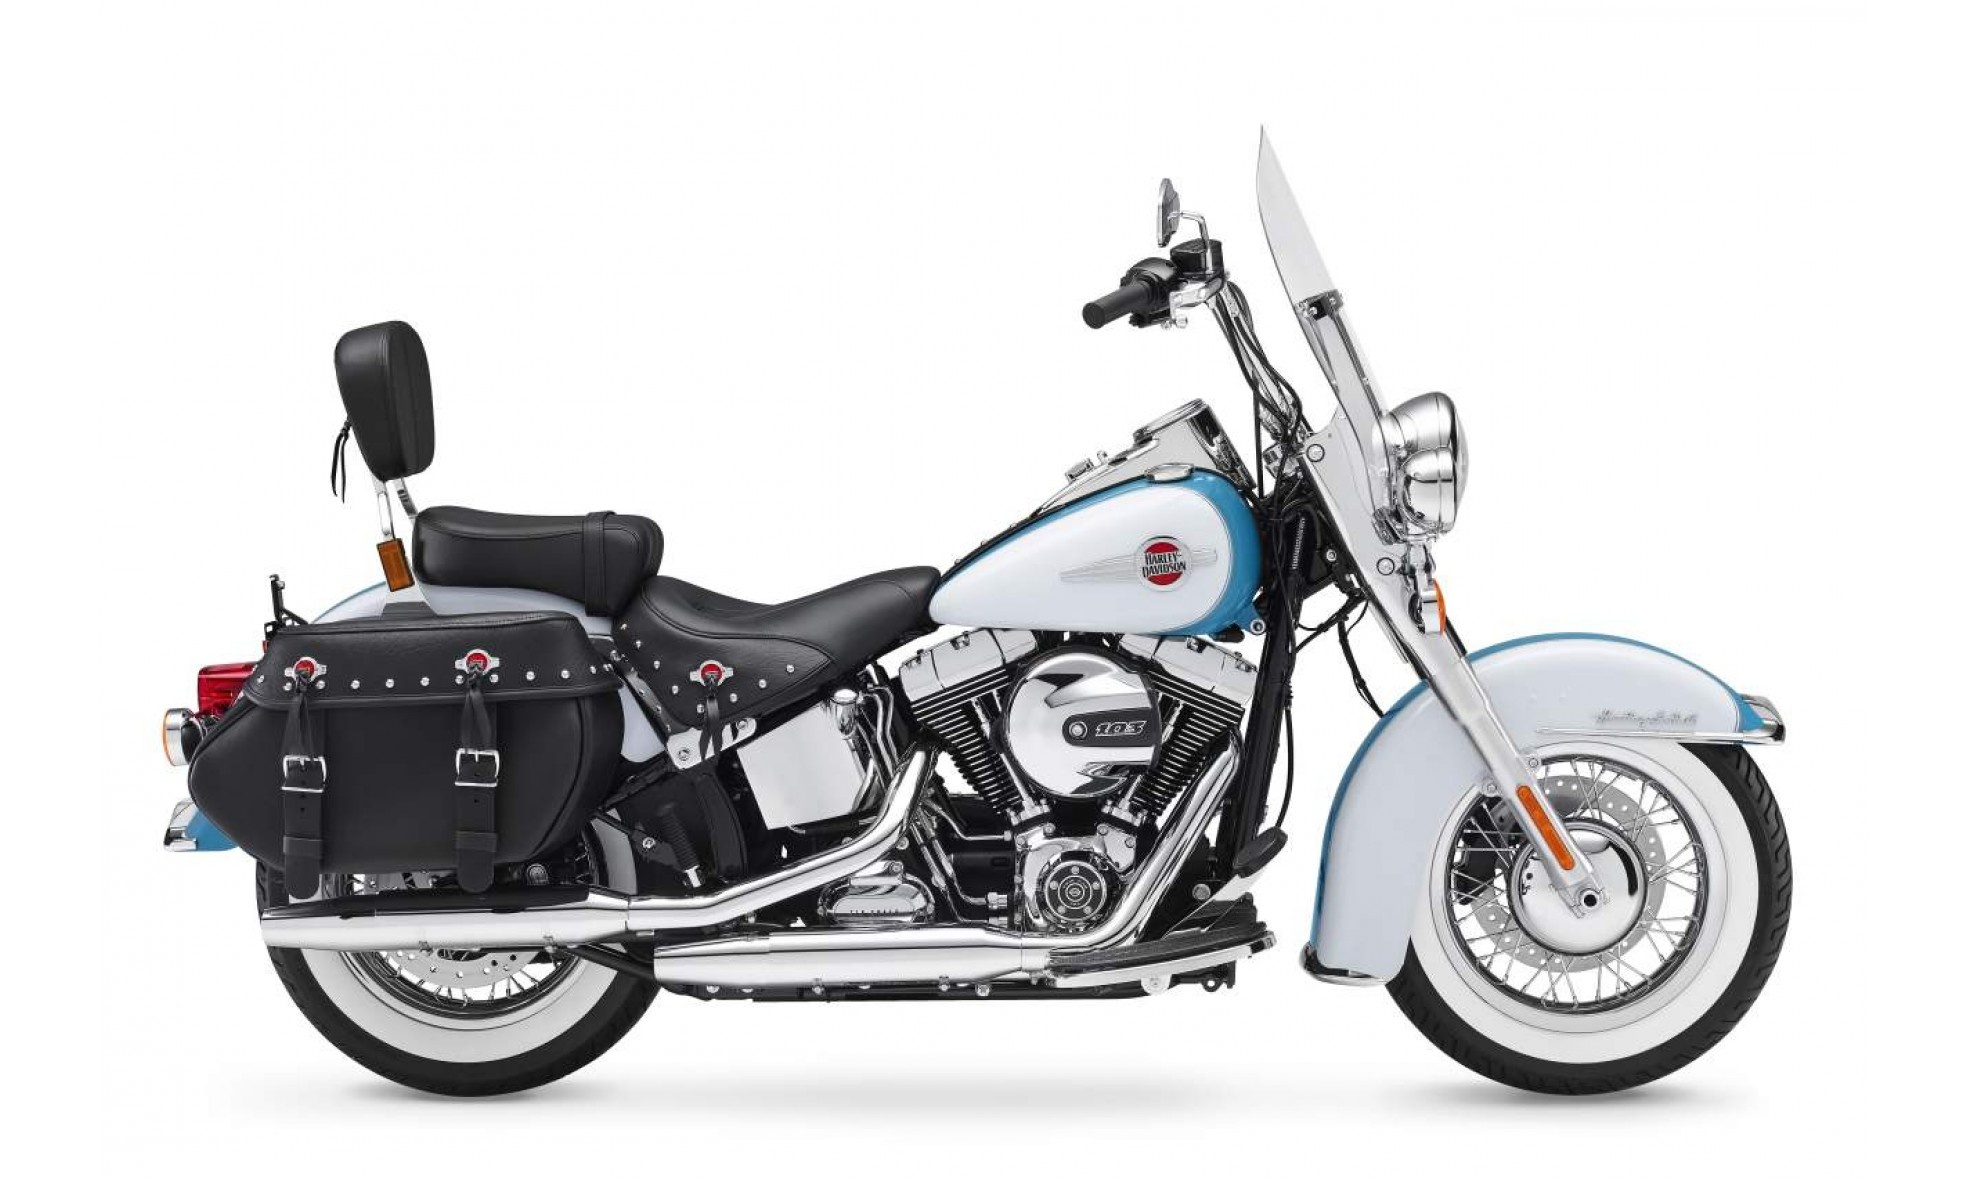 What are some must have Harley Davidson accessories for